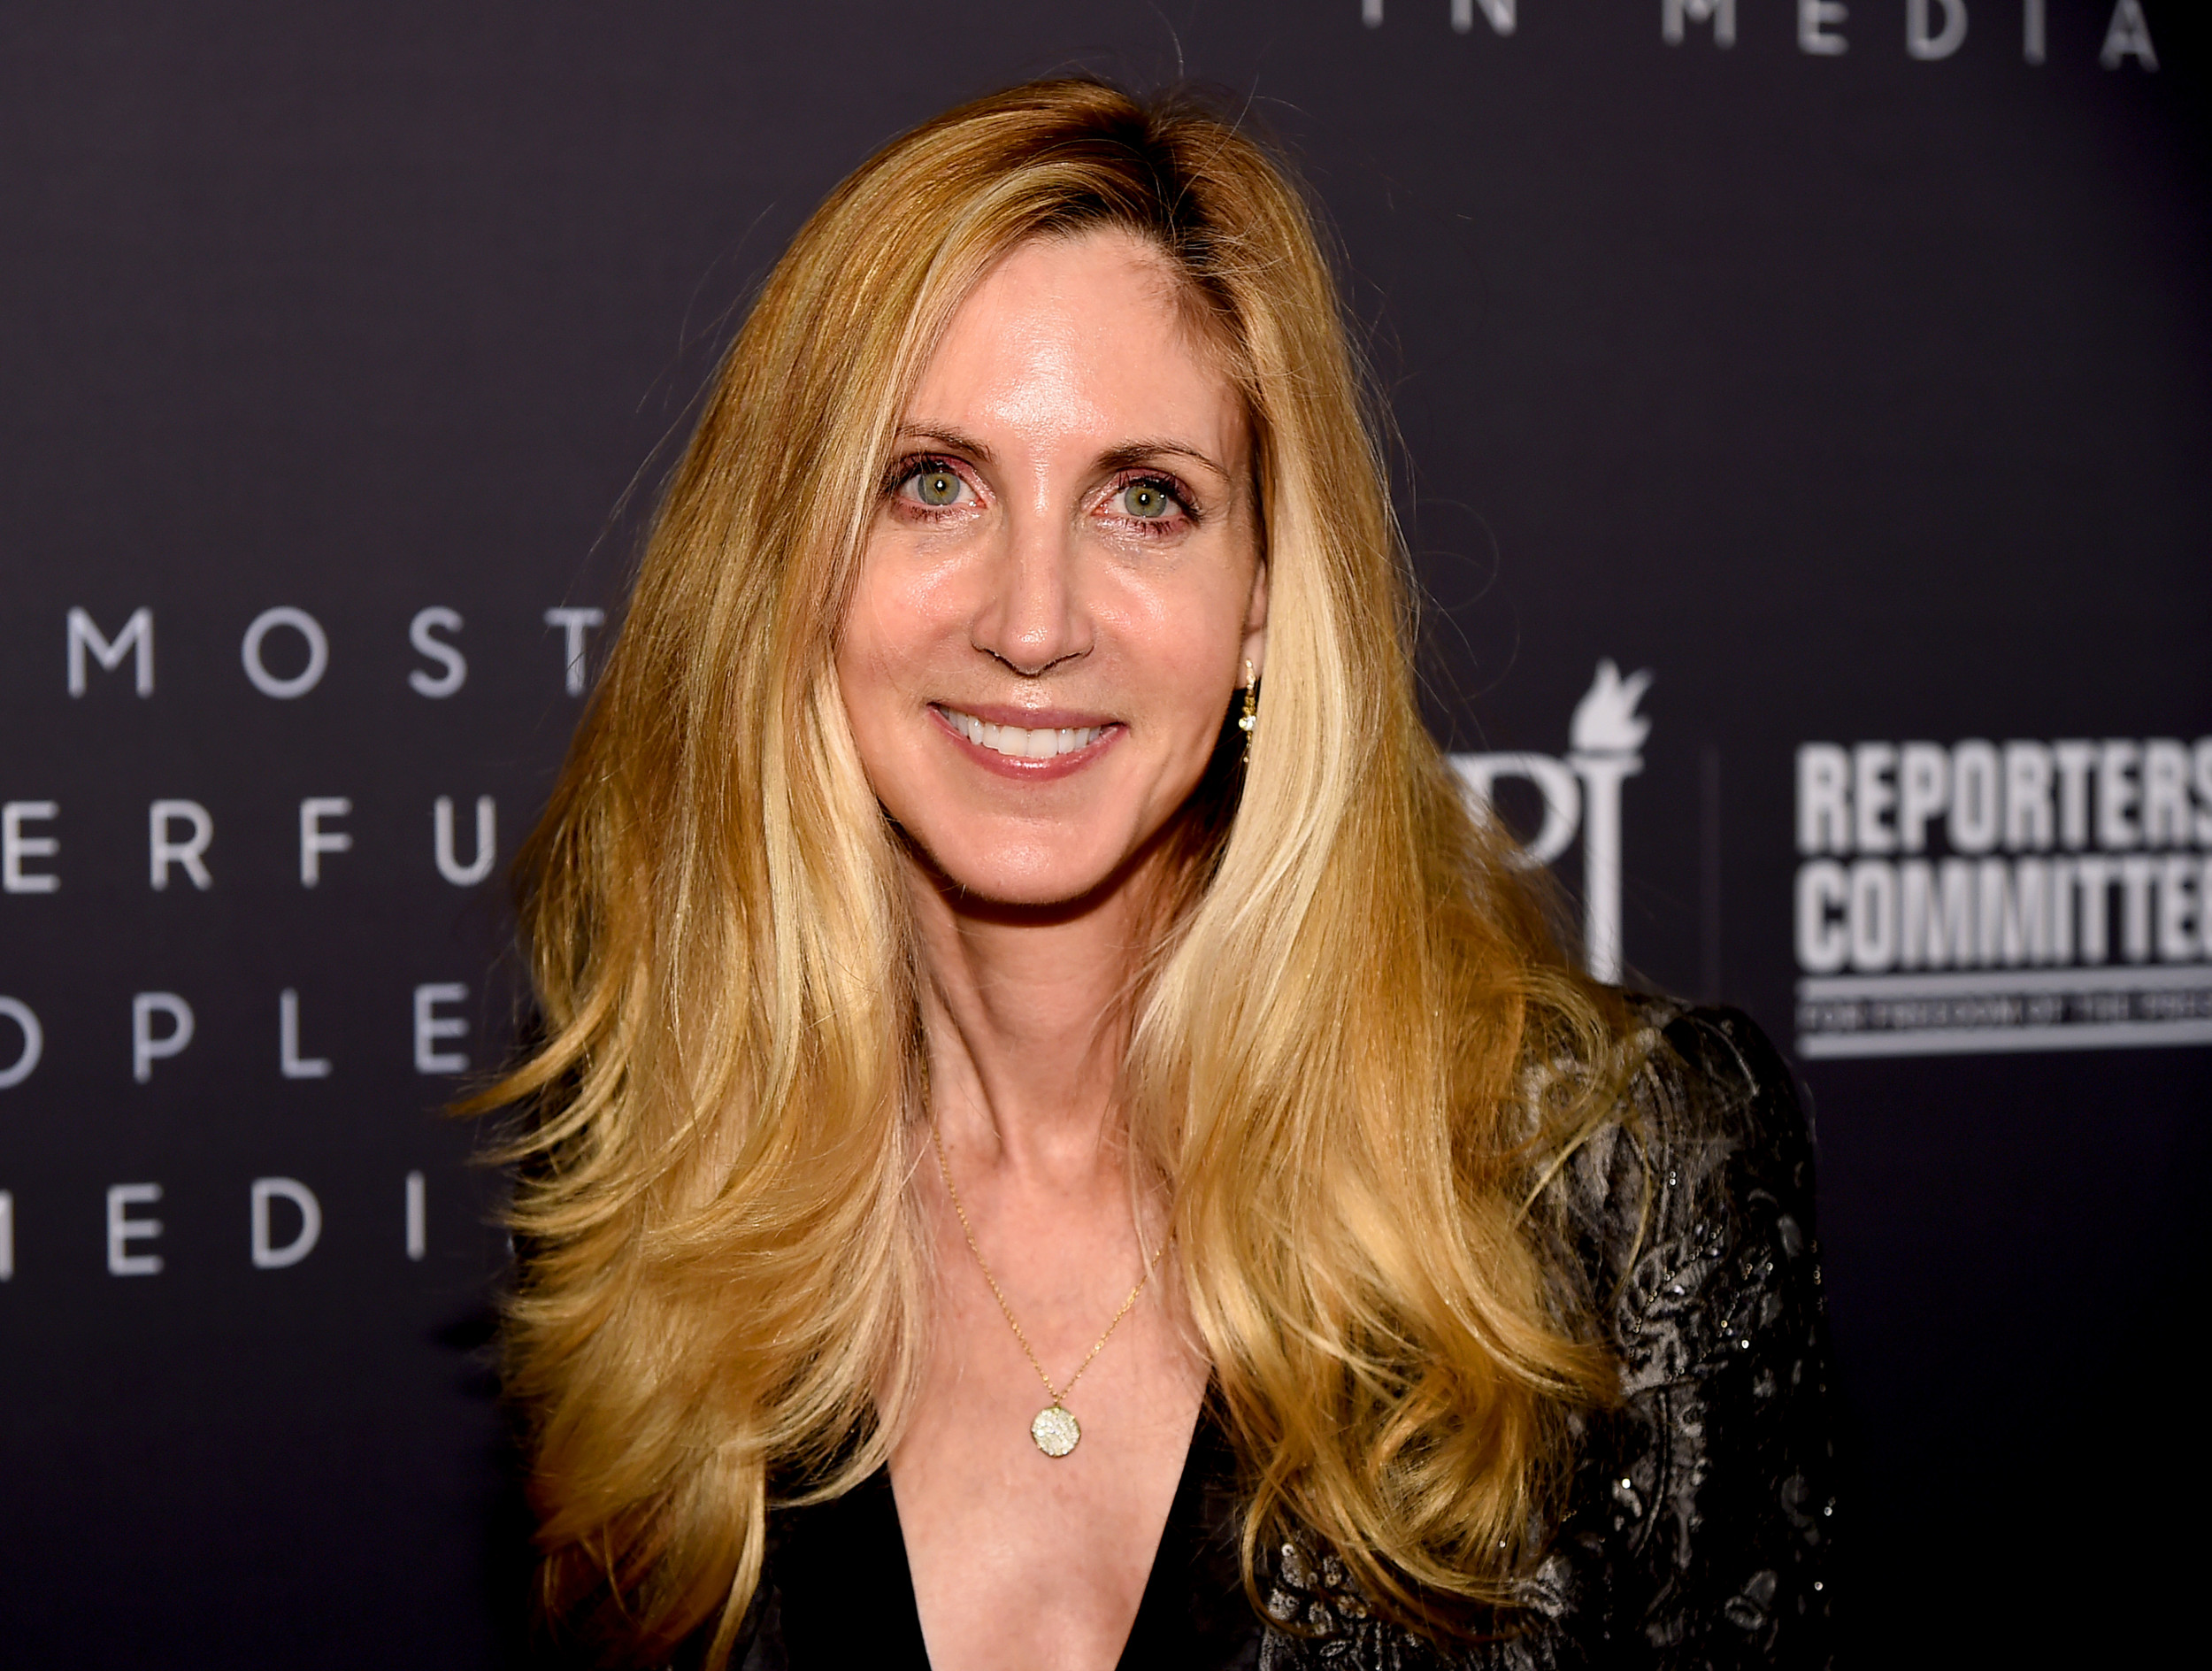 'War on Soccer': Ann Coulter rebukes women's soccer team with tweets vowing to ruin